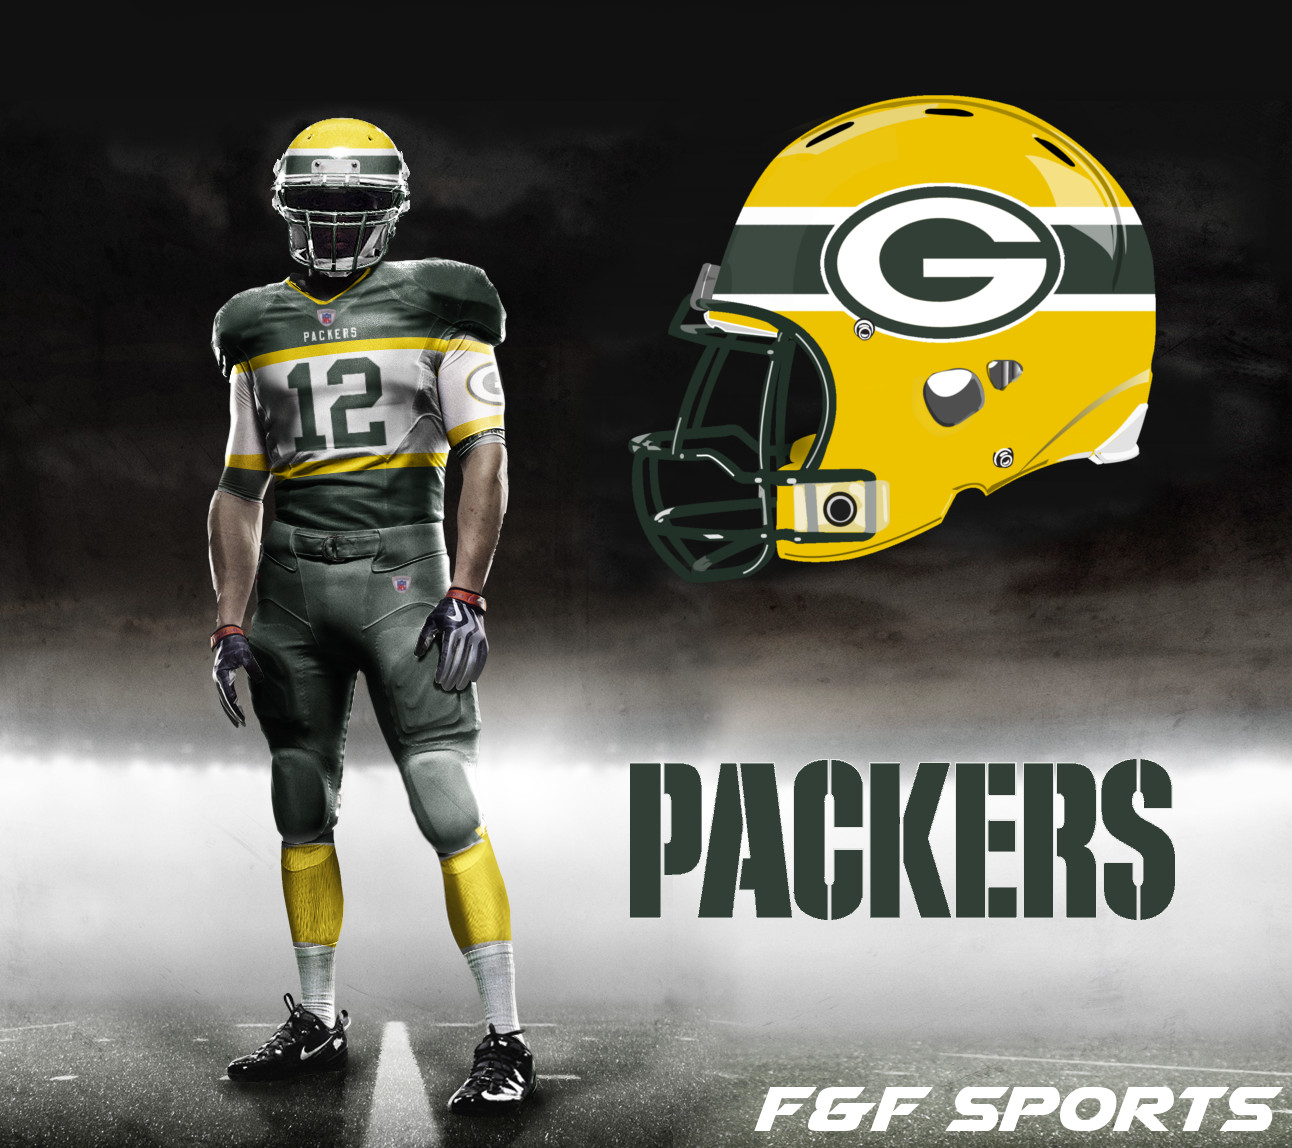 wholesale dealer e5e24 a3b47 new green bay packers jerseys